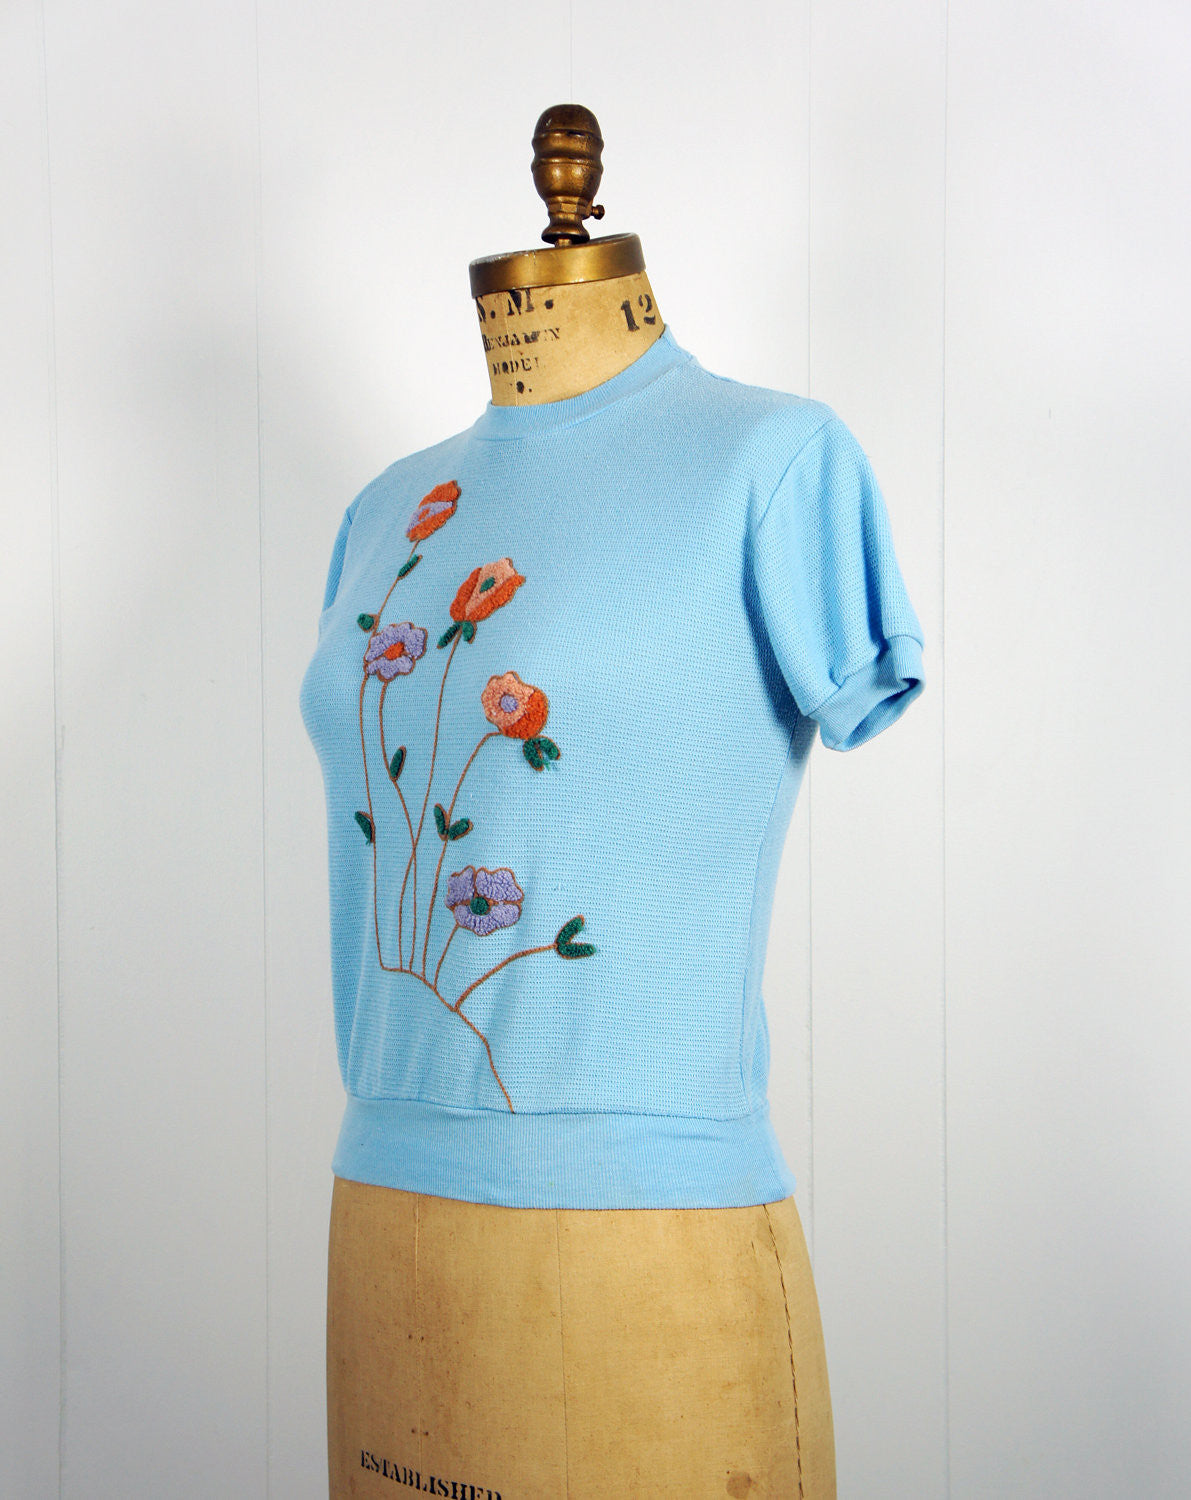 1970's Light Blue Thermal Top w/ Floral Embellishments - Size S